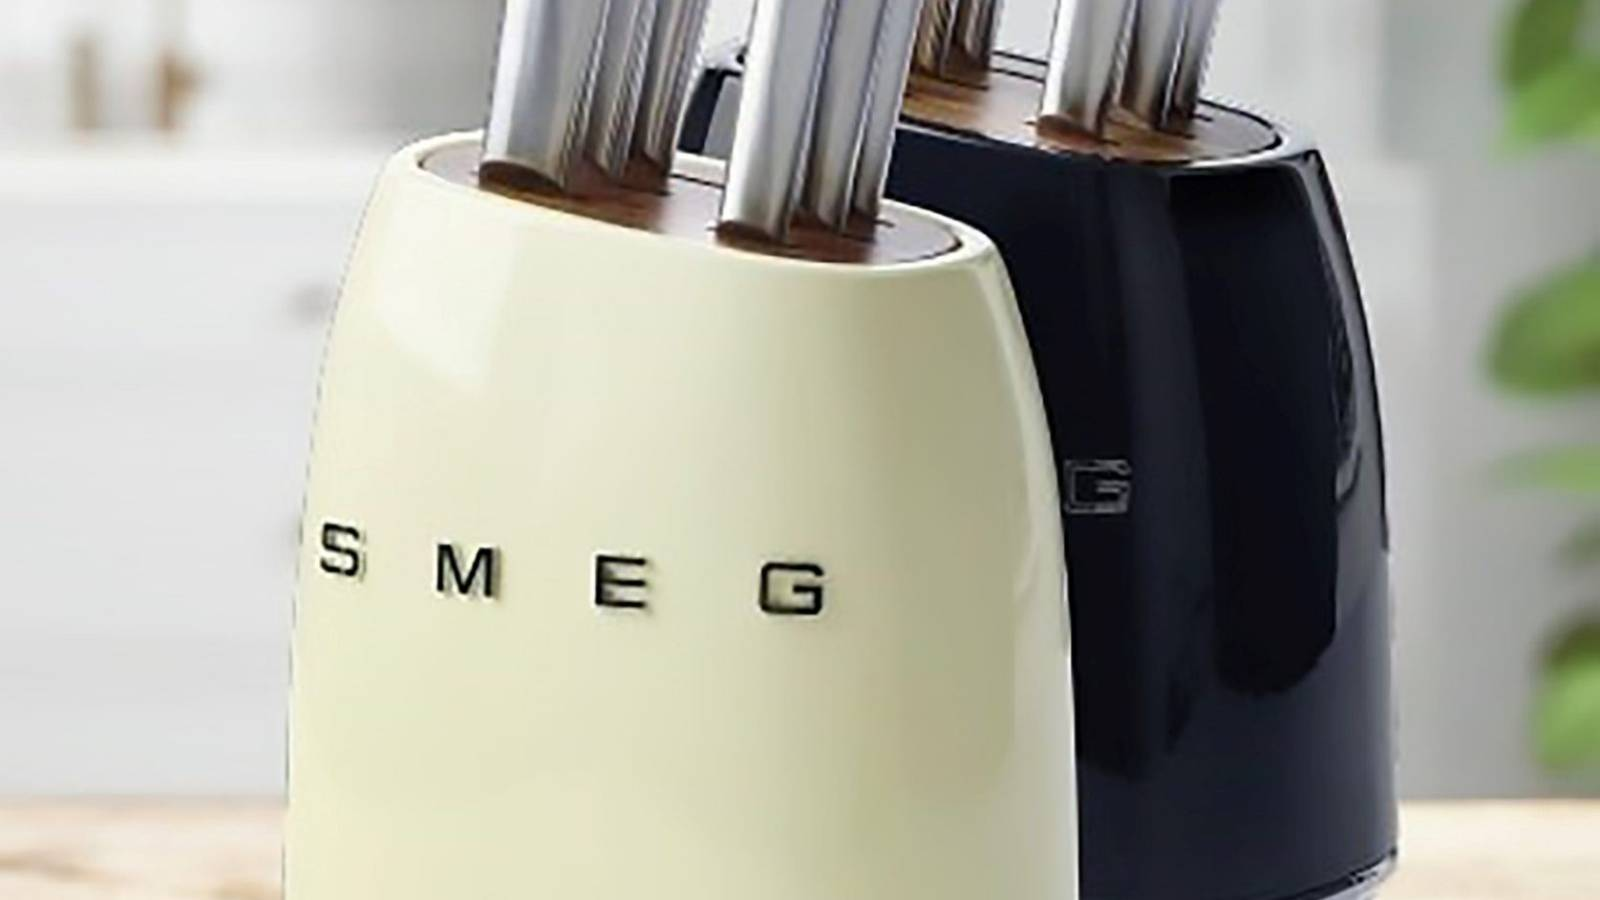 Smeg knife blocks on Trade Me, with prices up to $600